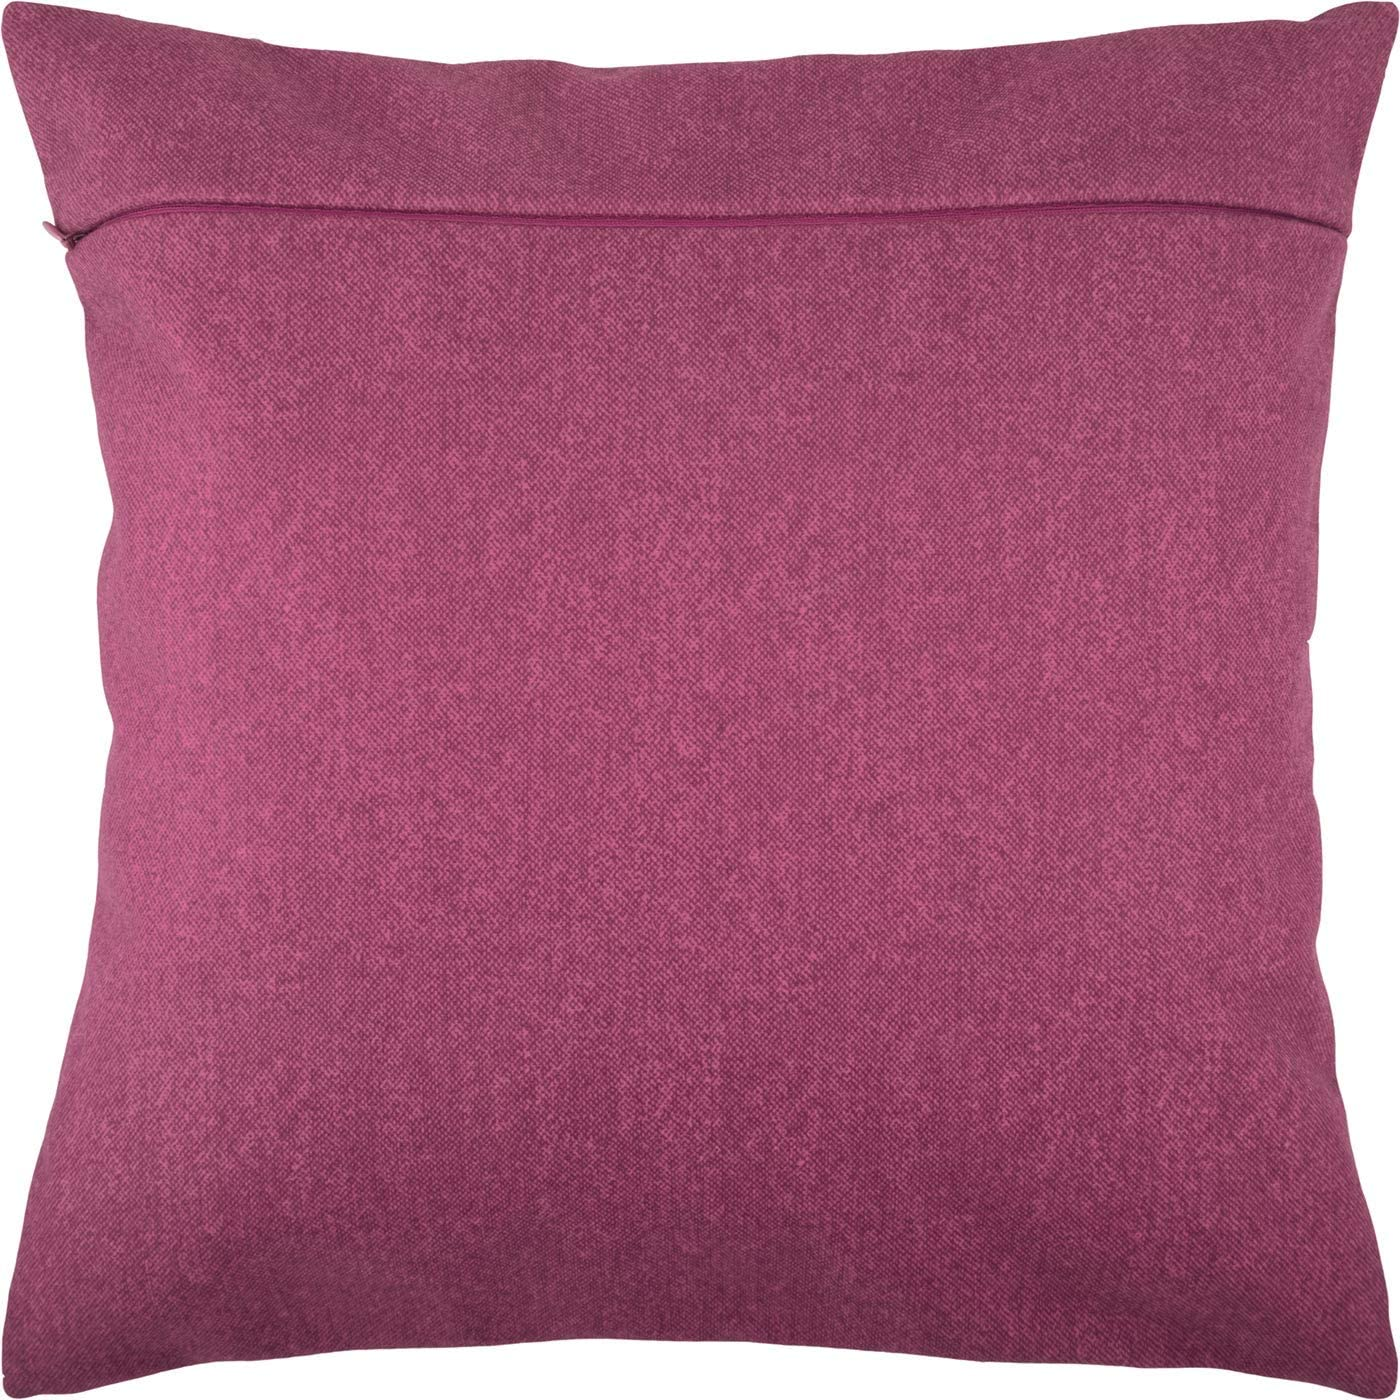 with Zipper Purple Backing for Throw Pillow Kits 16 /× 16 inches Eggplant from Europe